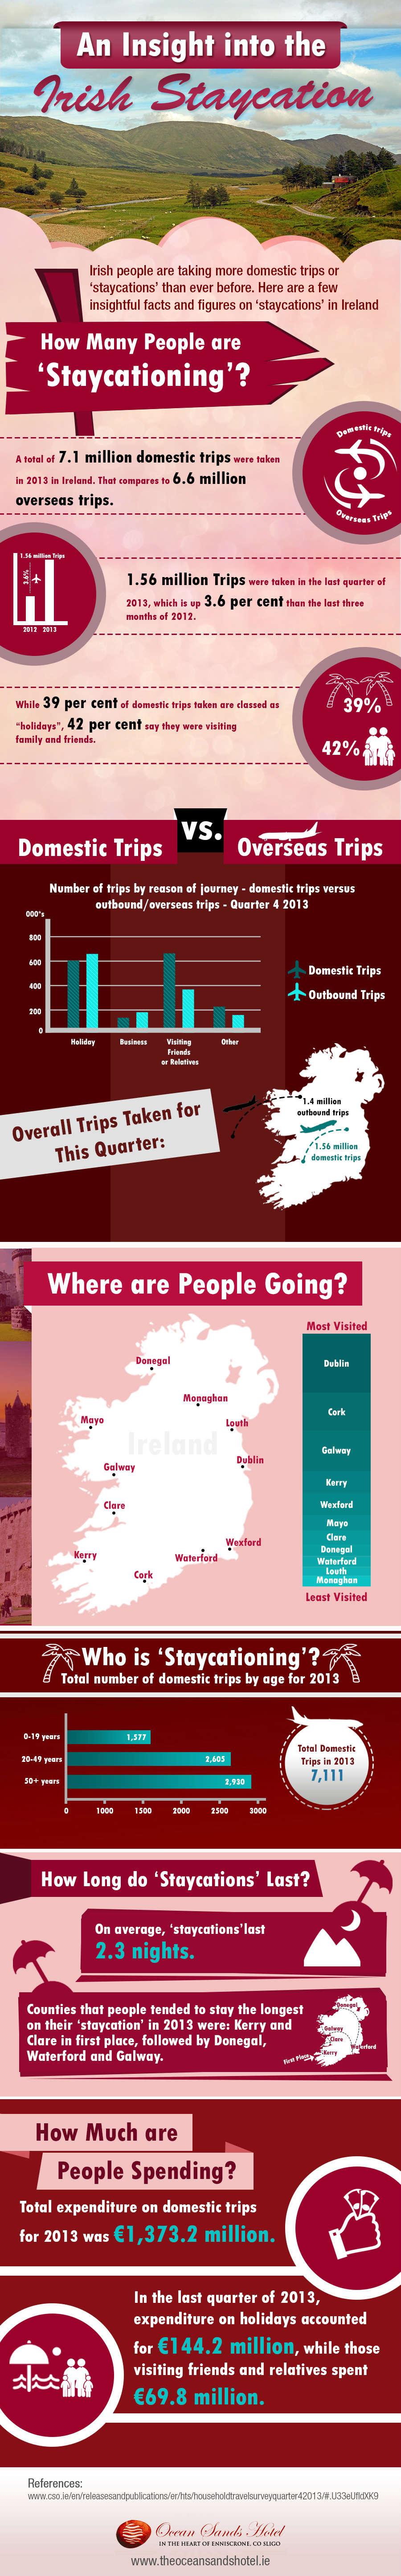 An Insight Into the Irish Staycation